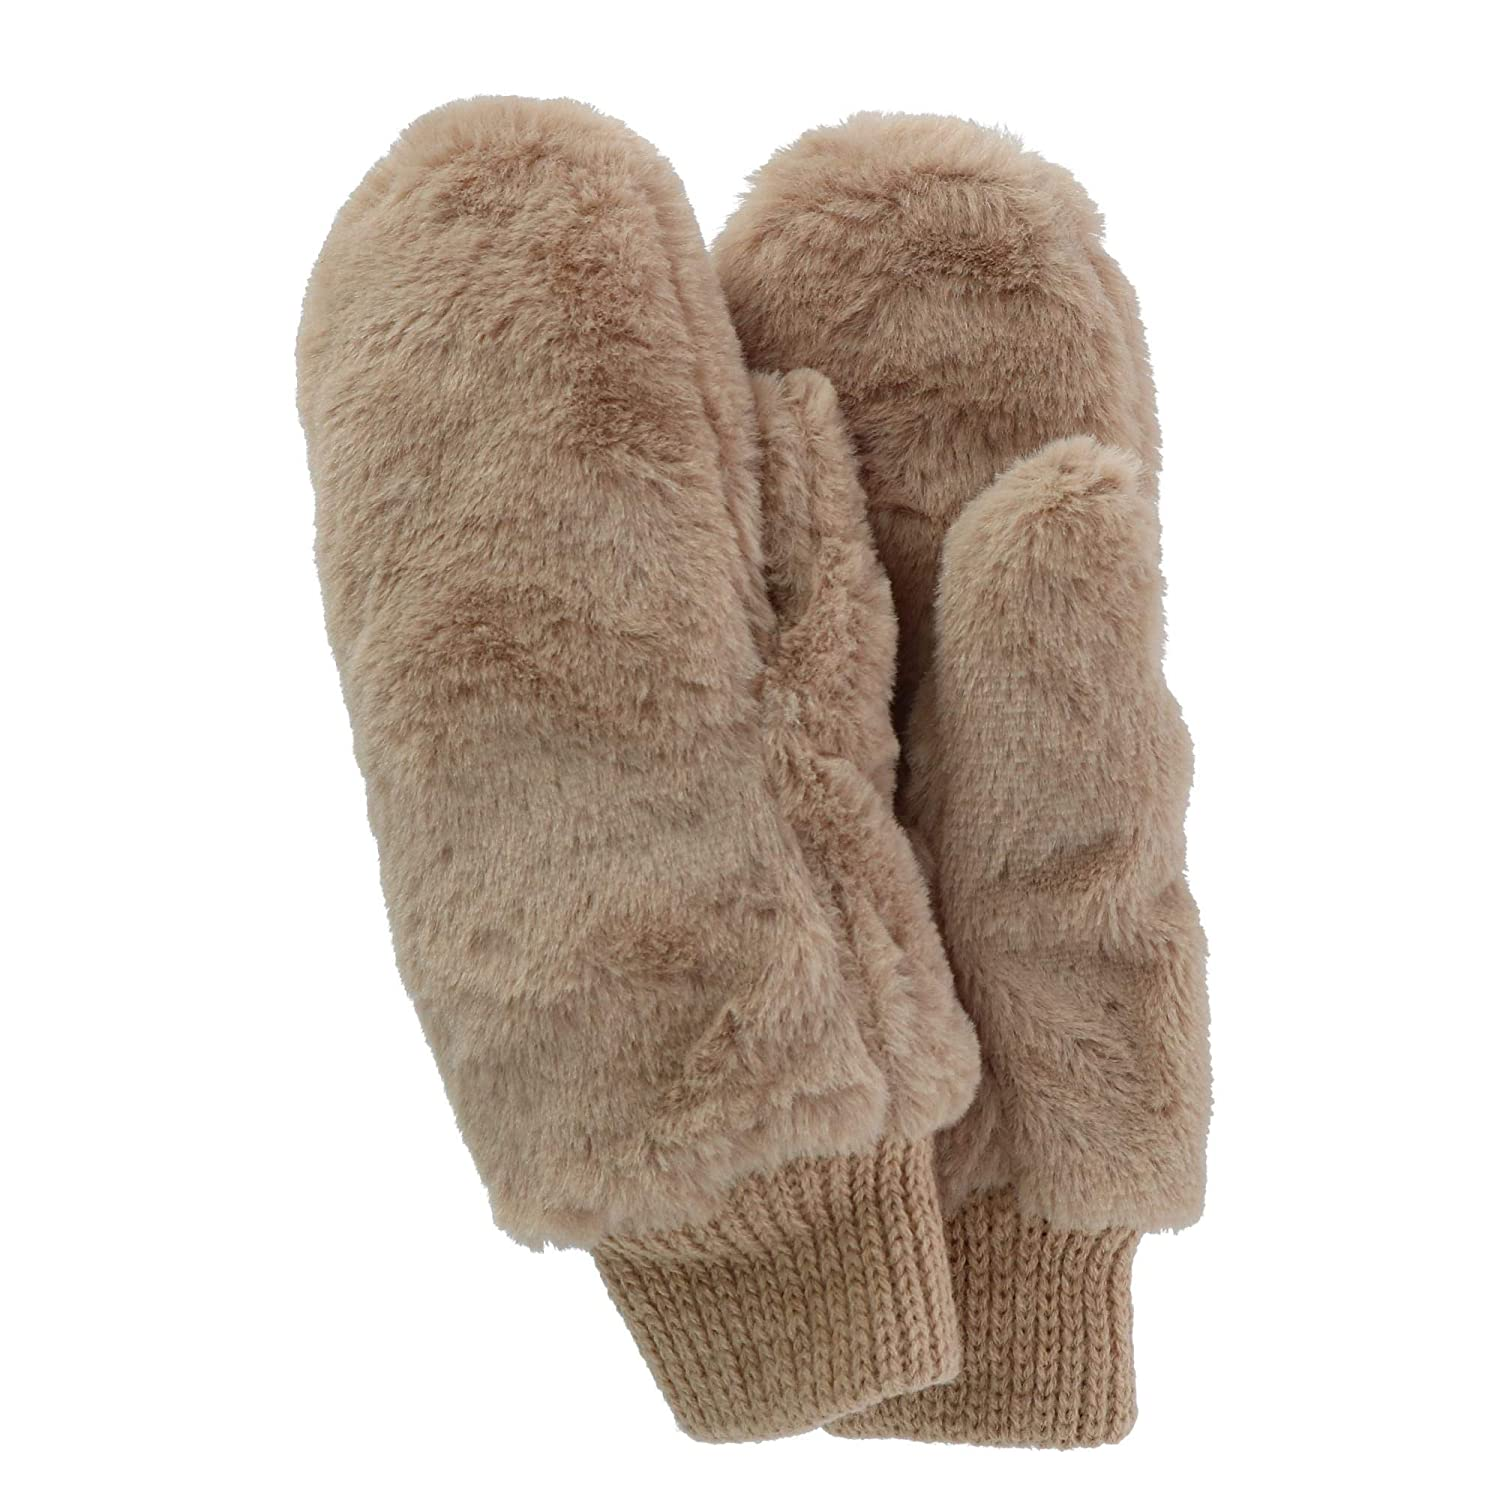 Alexa Rose Women's Fur Mitten with Sherpa Lining, Tan